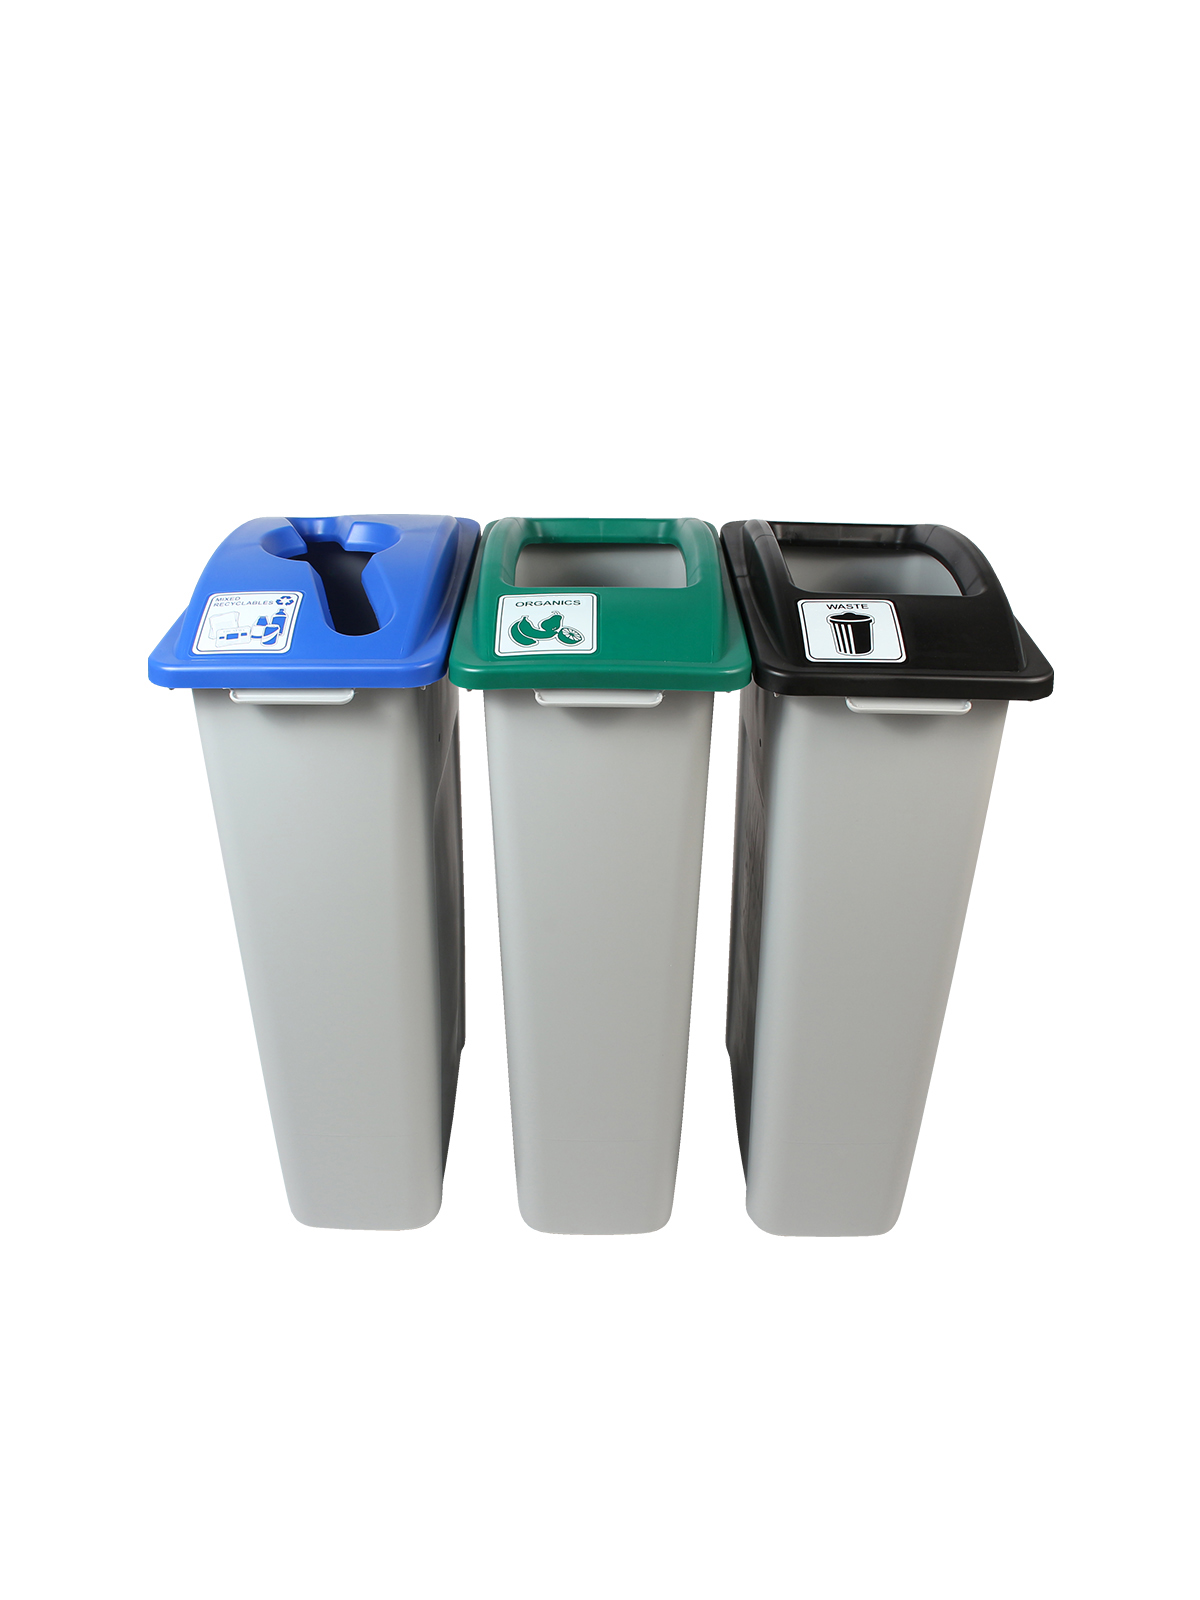 WASTE WATCHER - Triple - Mixed Recyclables-Organics-Waste - Mixed-Full - Grey-Blue-Green-Black